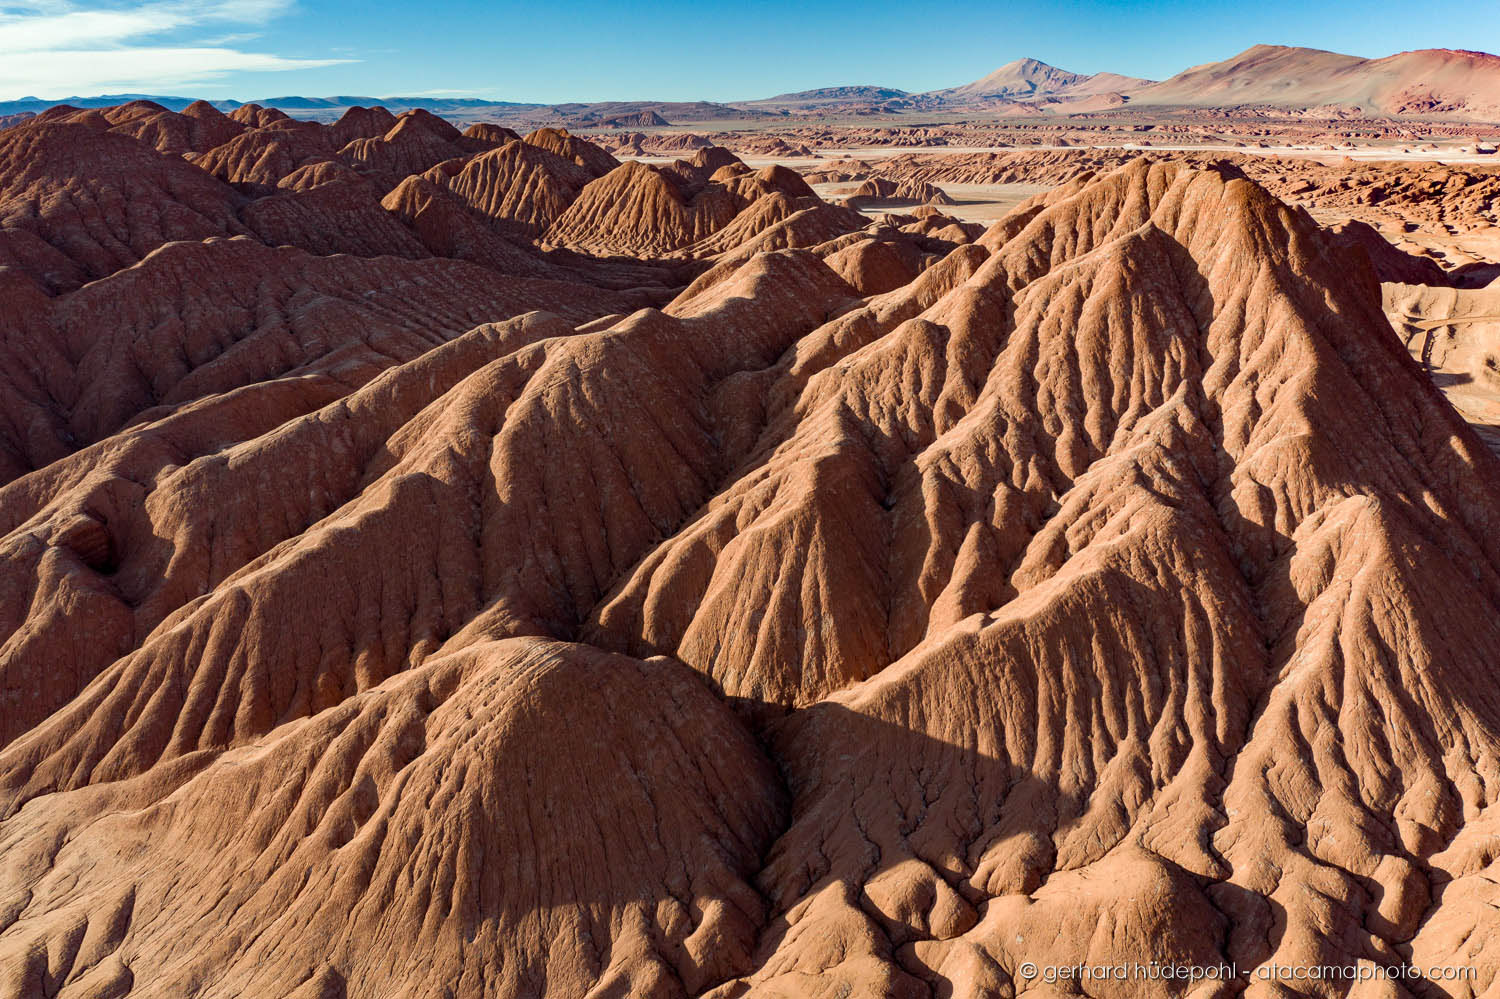 Desierto del Diabolo, an eroded deserto of clay mountains in Salta Province, Argentina